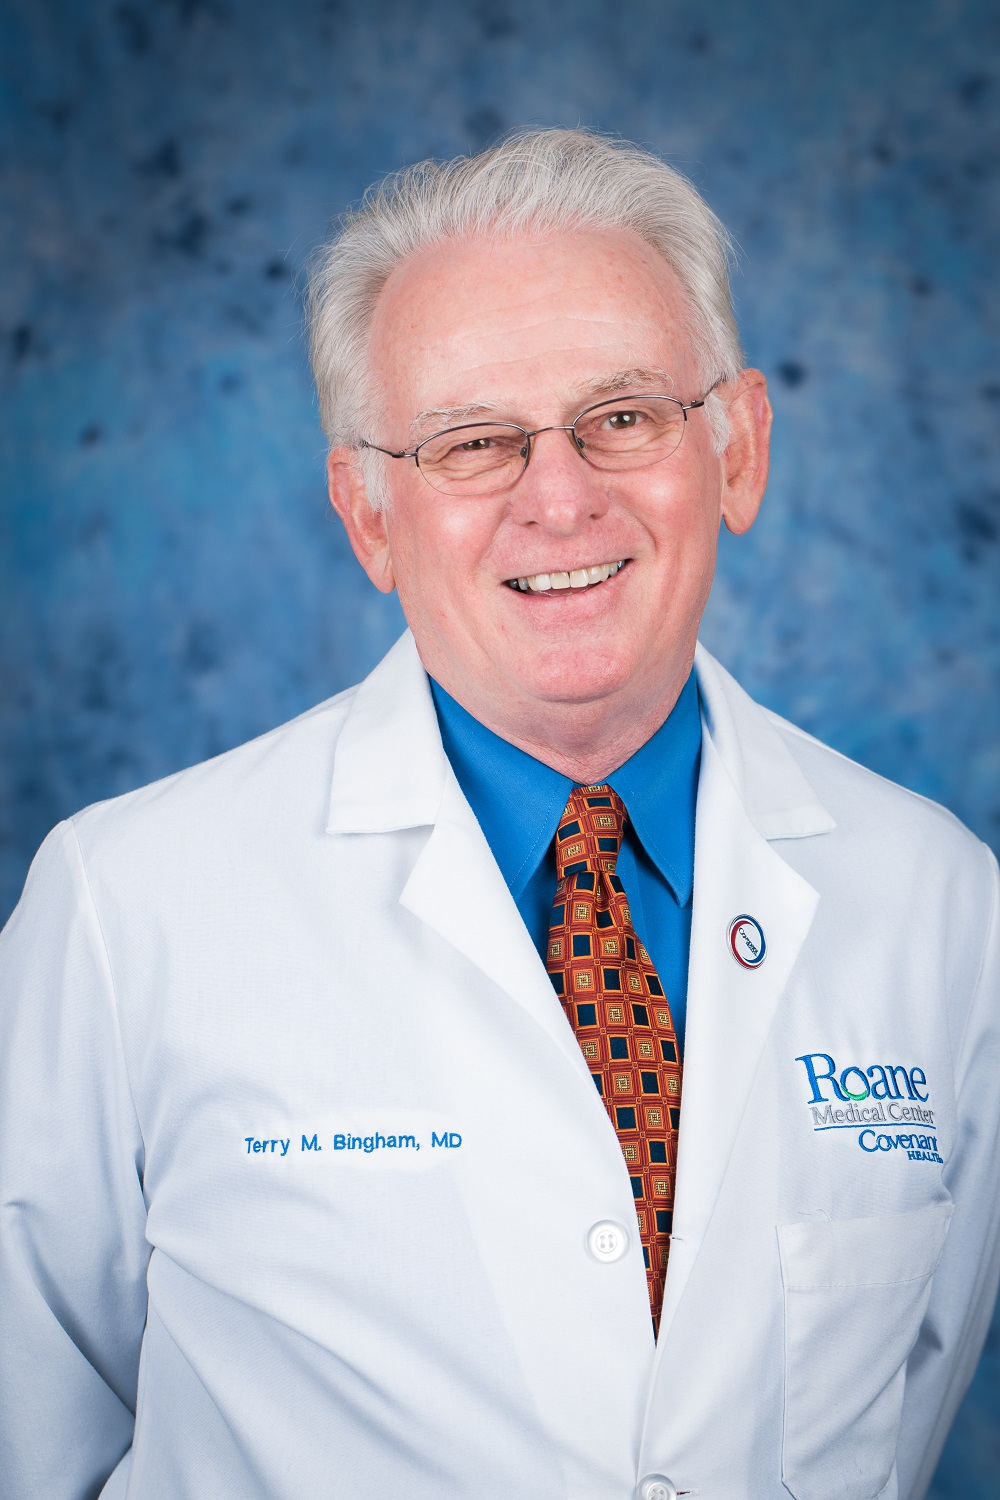 Terry M. Bingham, MD, FACS of the Surgical Team at Roane Surgical Group